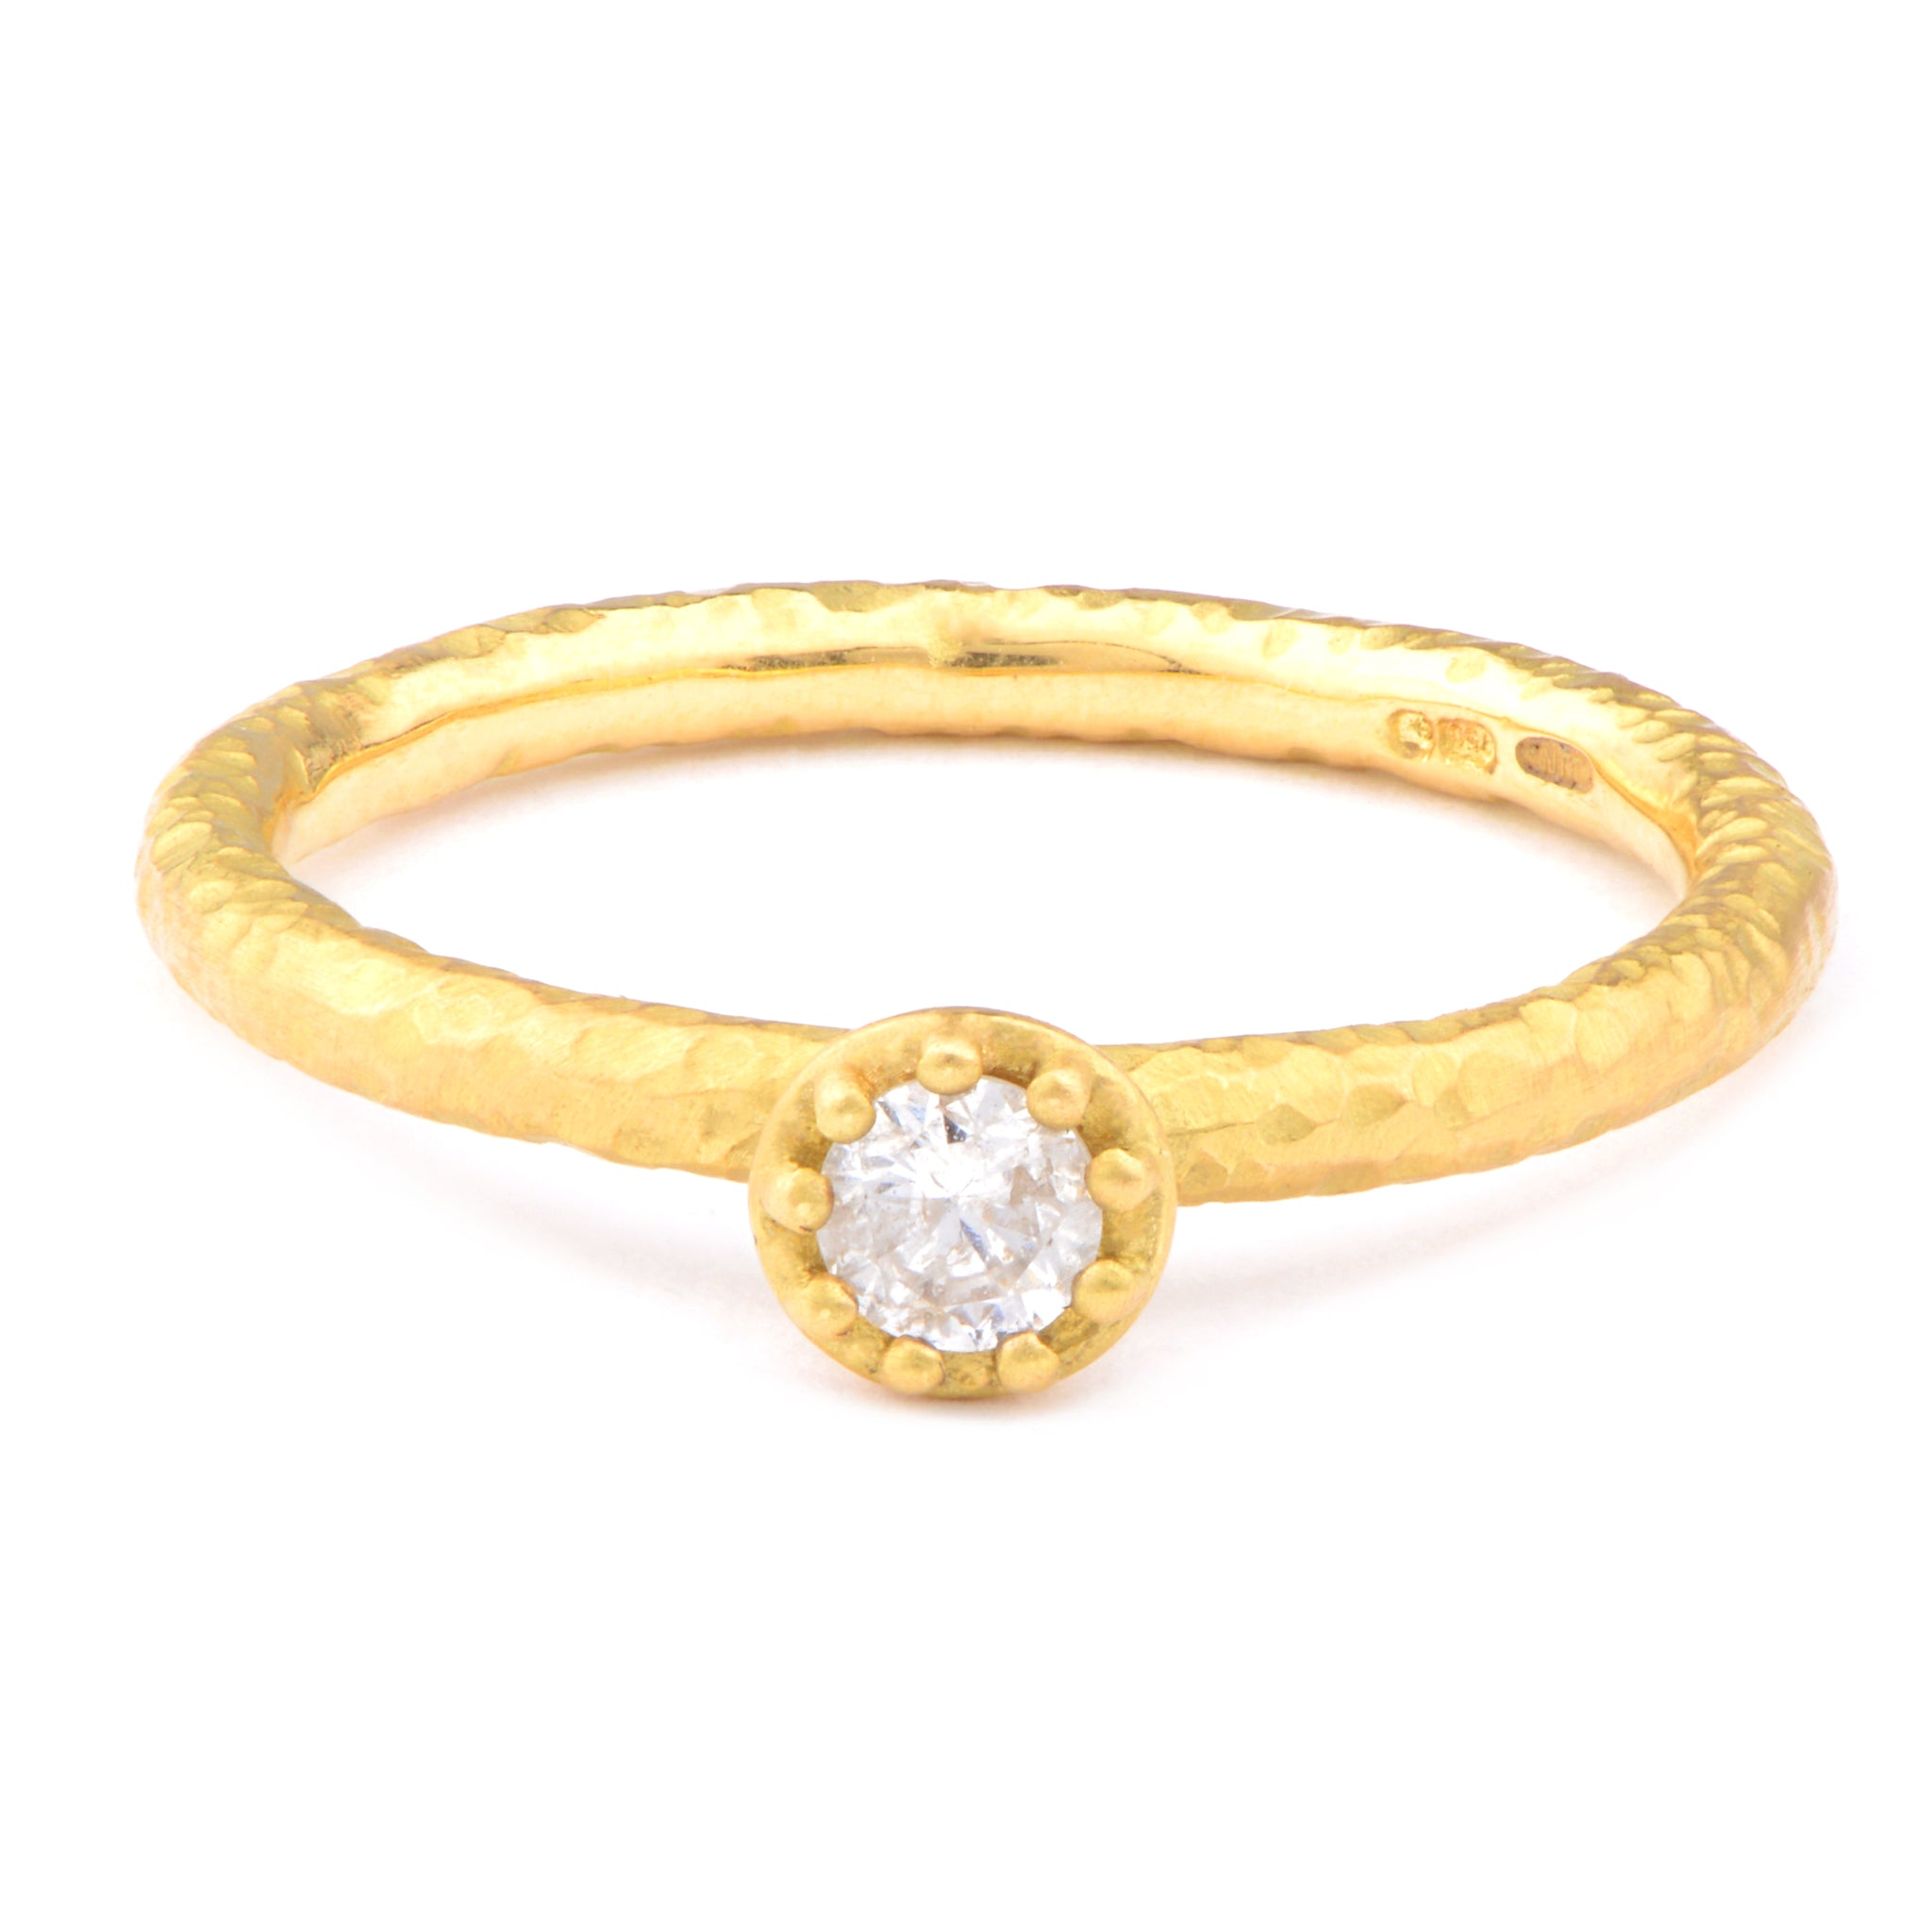 Fiori Yellow Gold Solitaire Diamond Ring - James Newman Jewellery